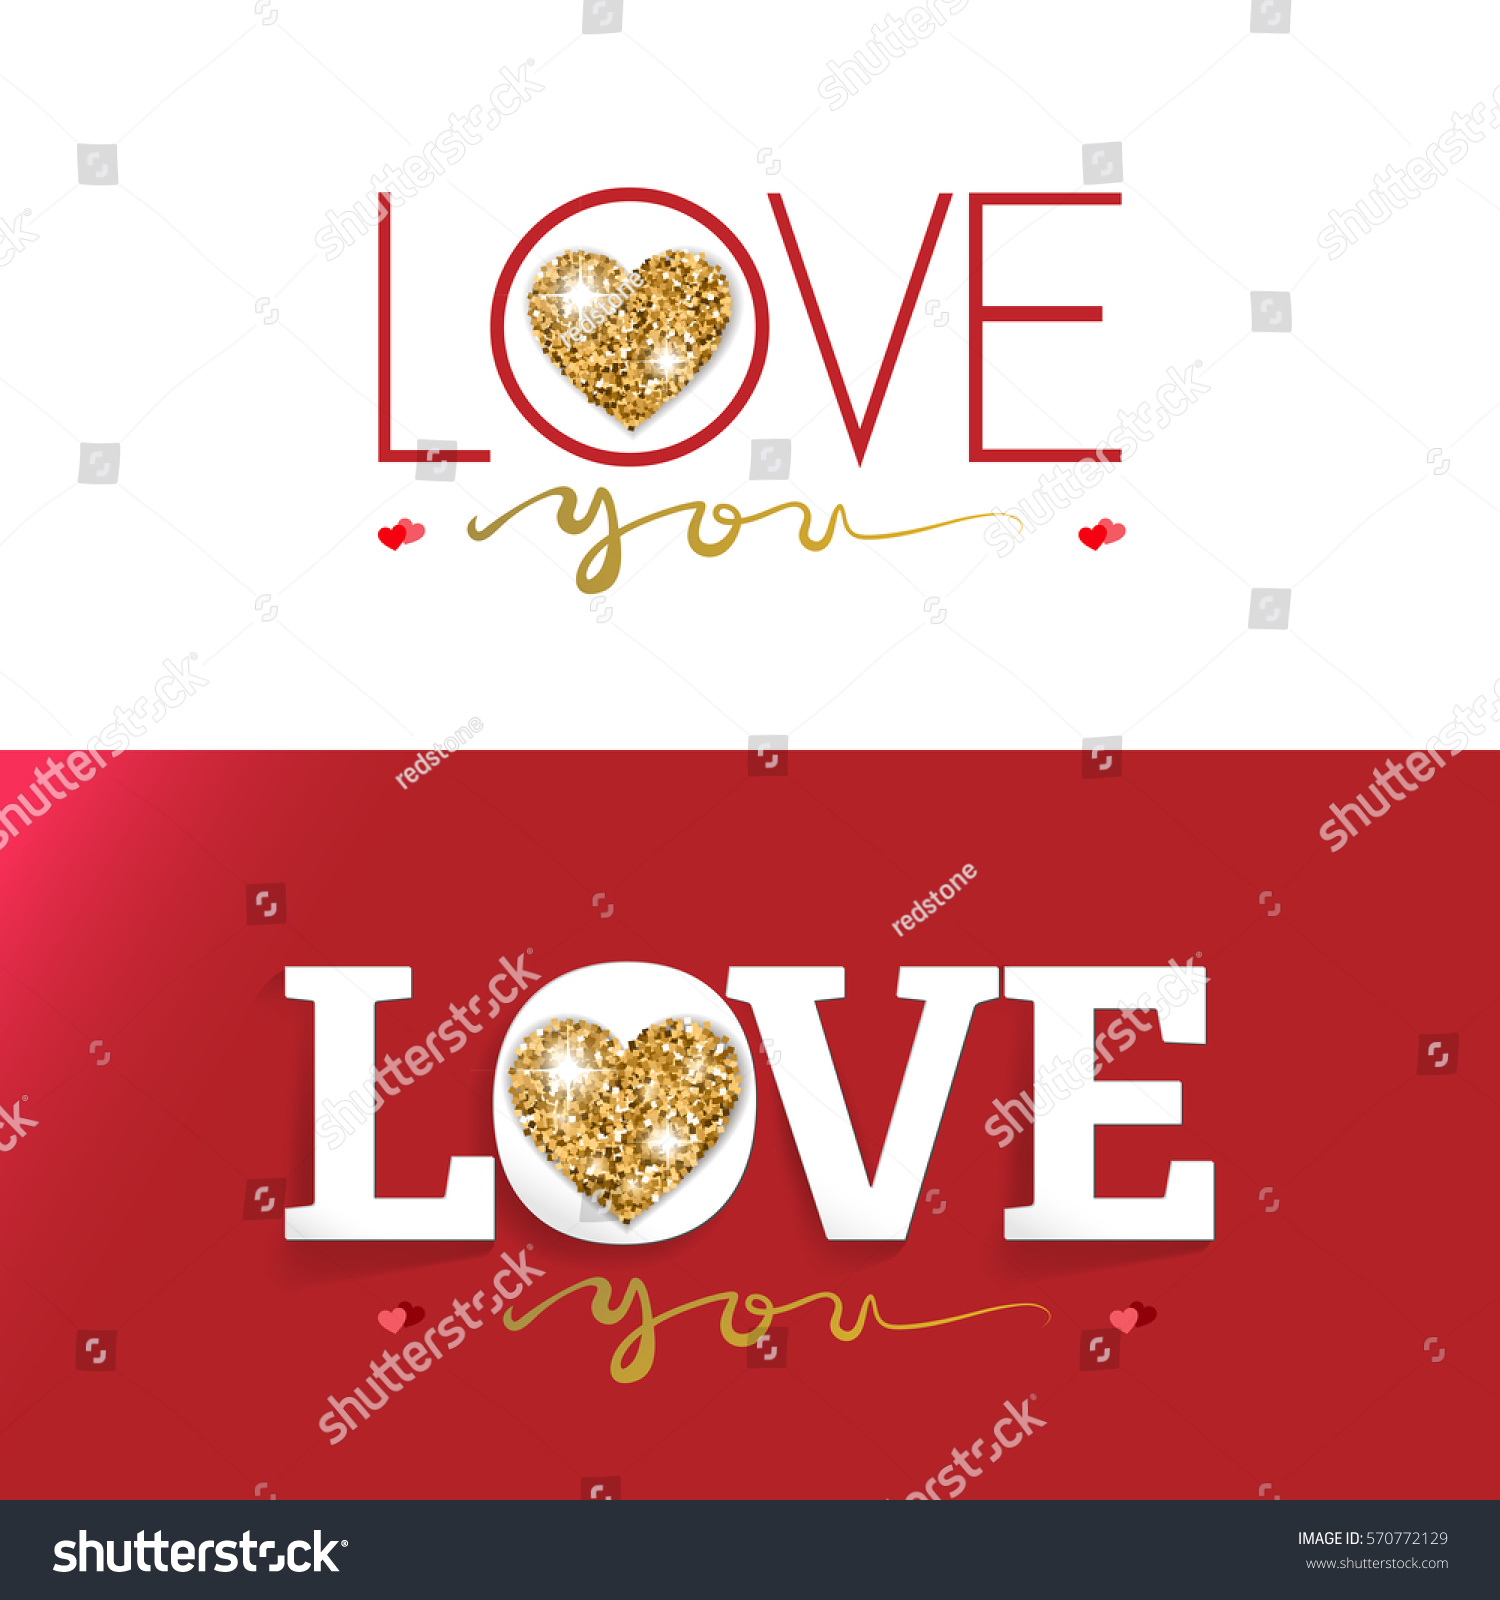 LOVE Happy Valentines Day Card Design Stock Vector (Royalty Free ...